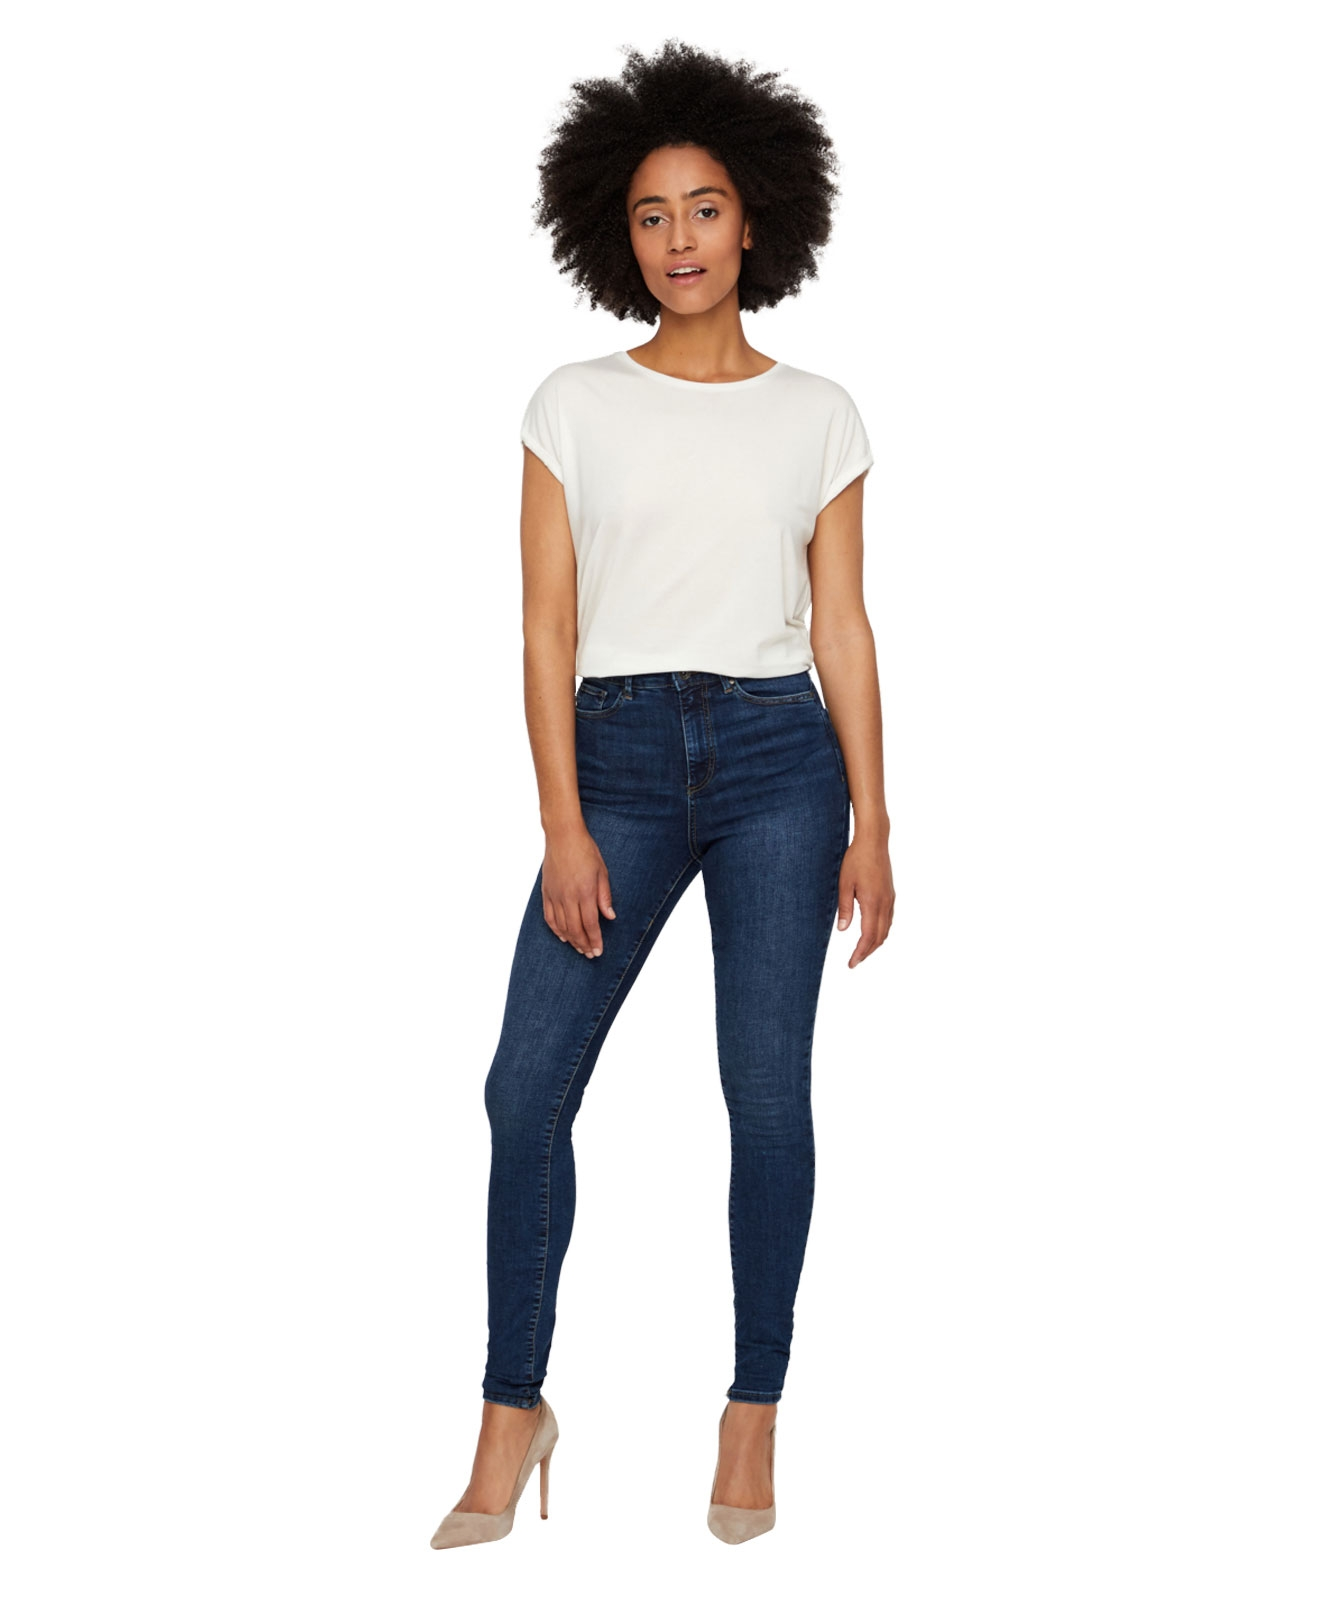 Hosen - Vero Moda Jeans Röhre Sophia in Medium Blue Denim  - Onlineshop Jeans Meile